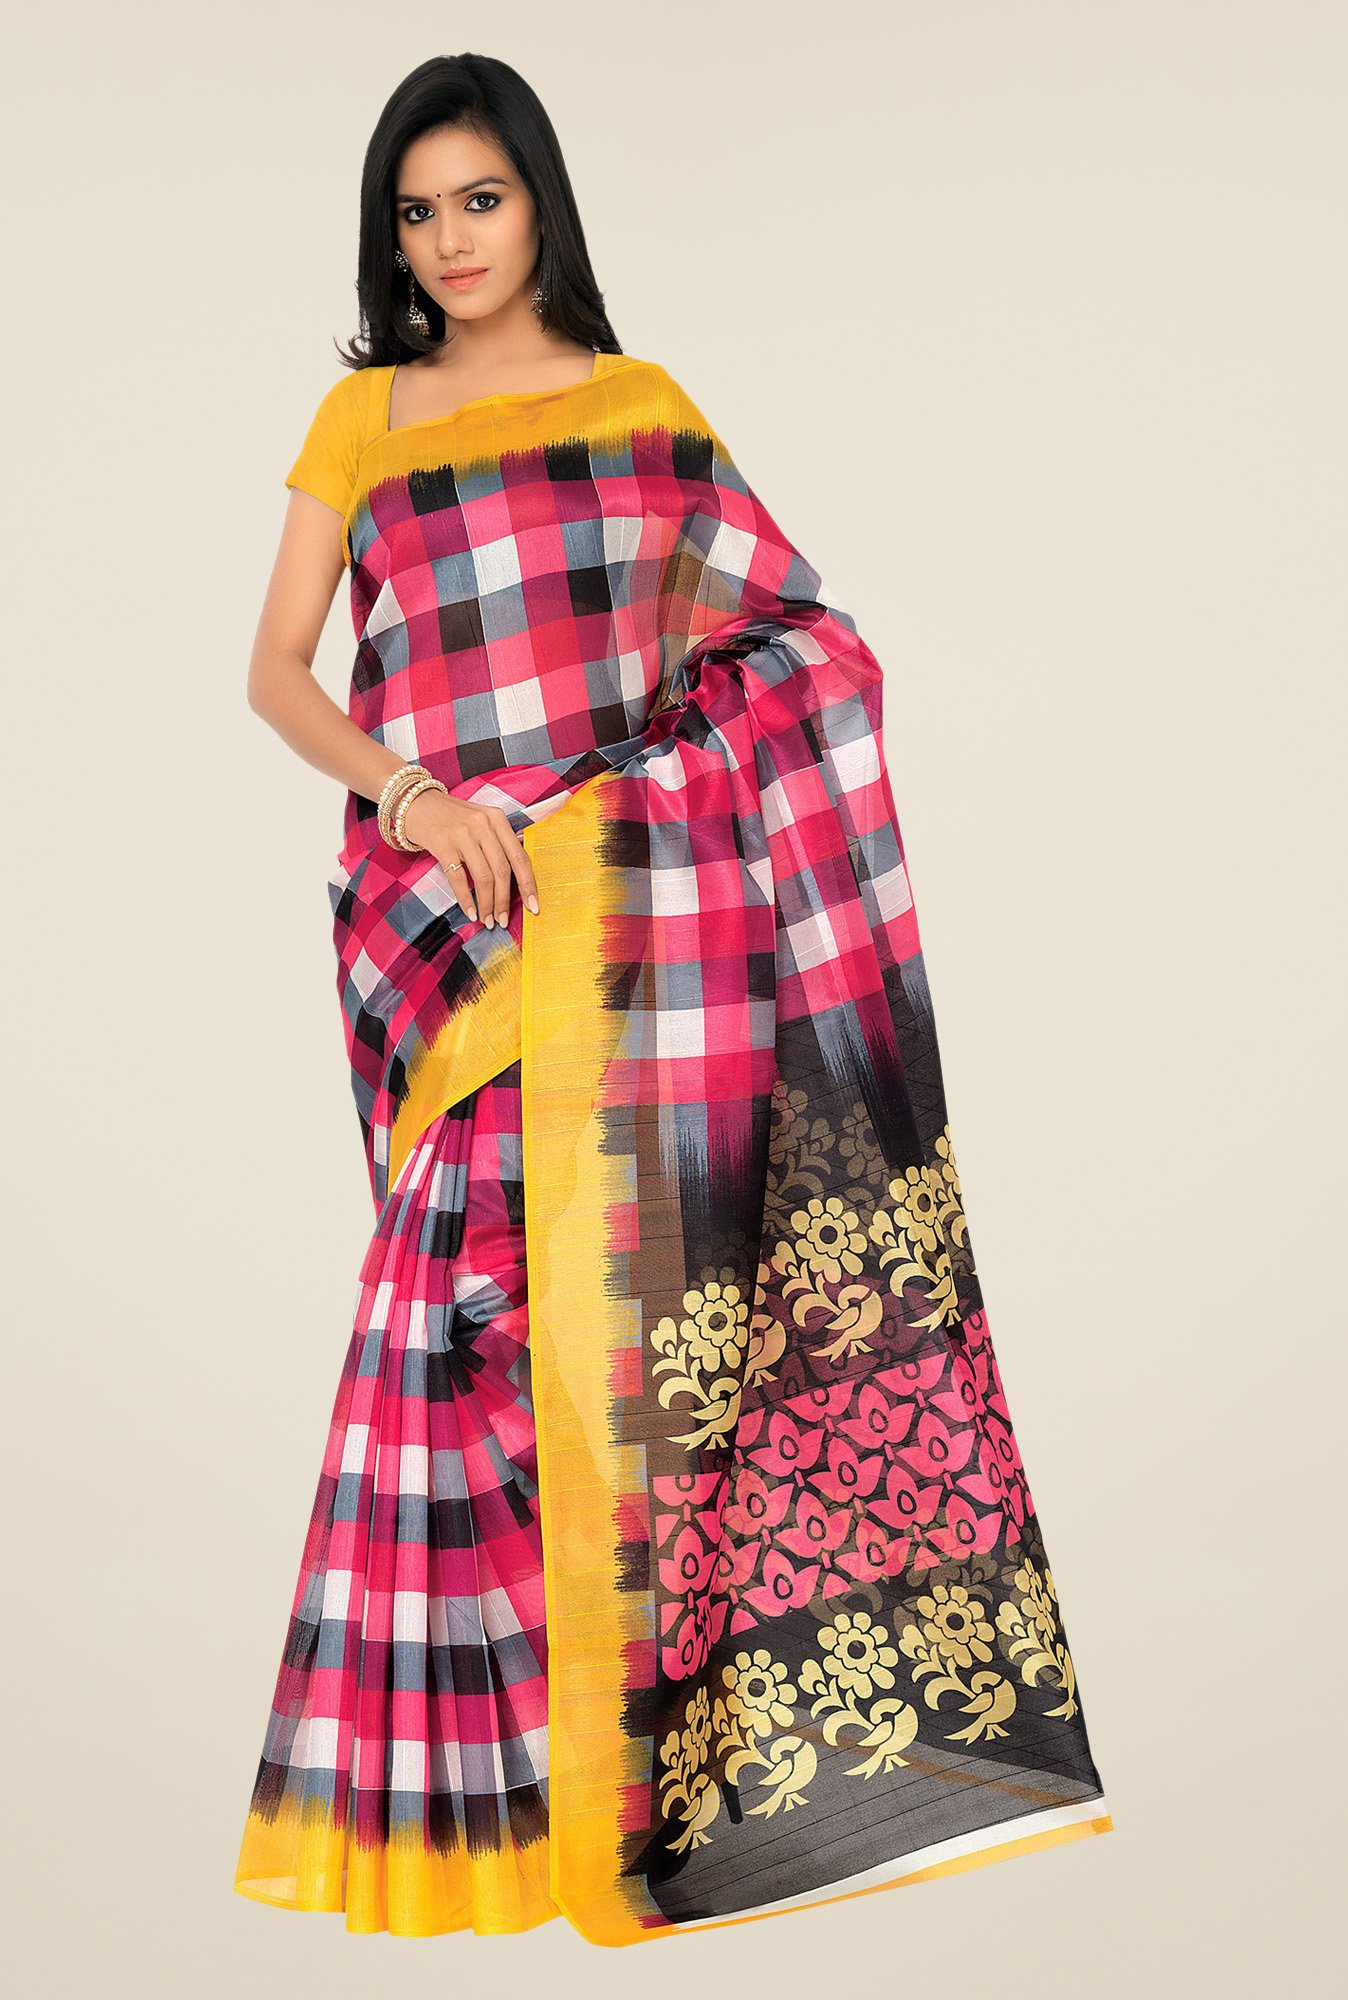 Shonaya Pink & Yellow Bhagalpuri Silk Checks Saree